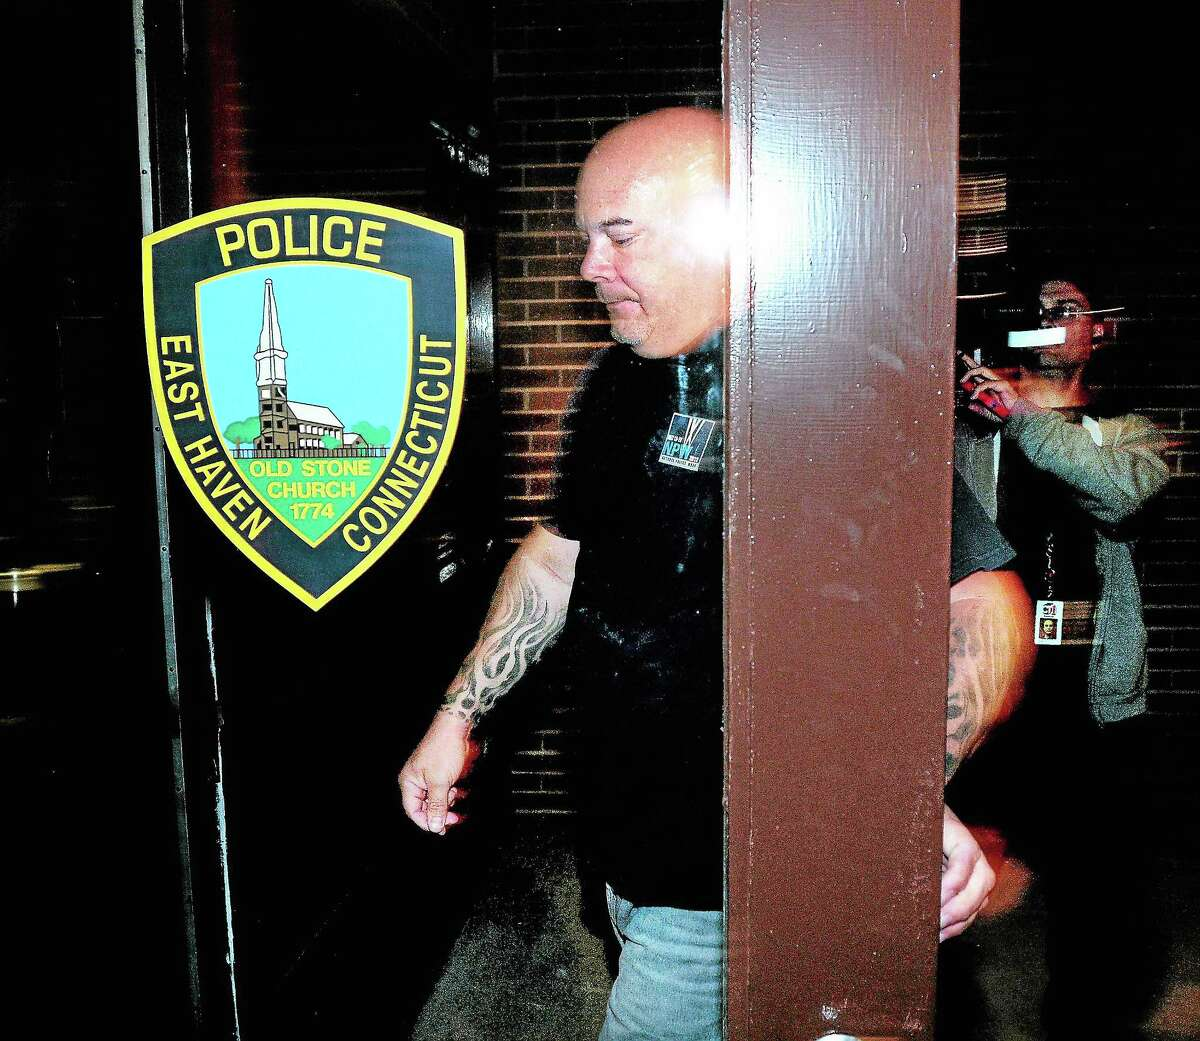 (Arnold Gold — New Haven Register) Angelo Appi responding to an arrest warrant walks into the East Haven Police Department on 10/22/2013.